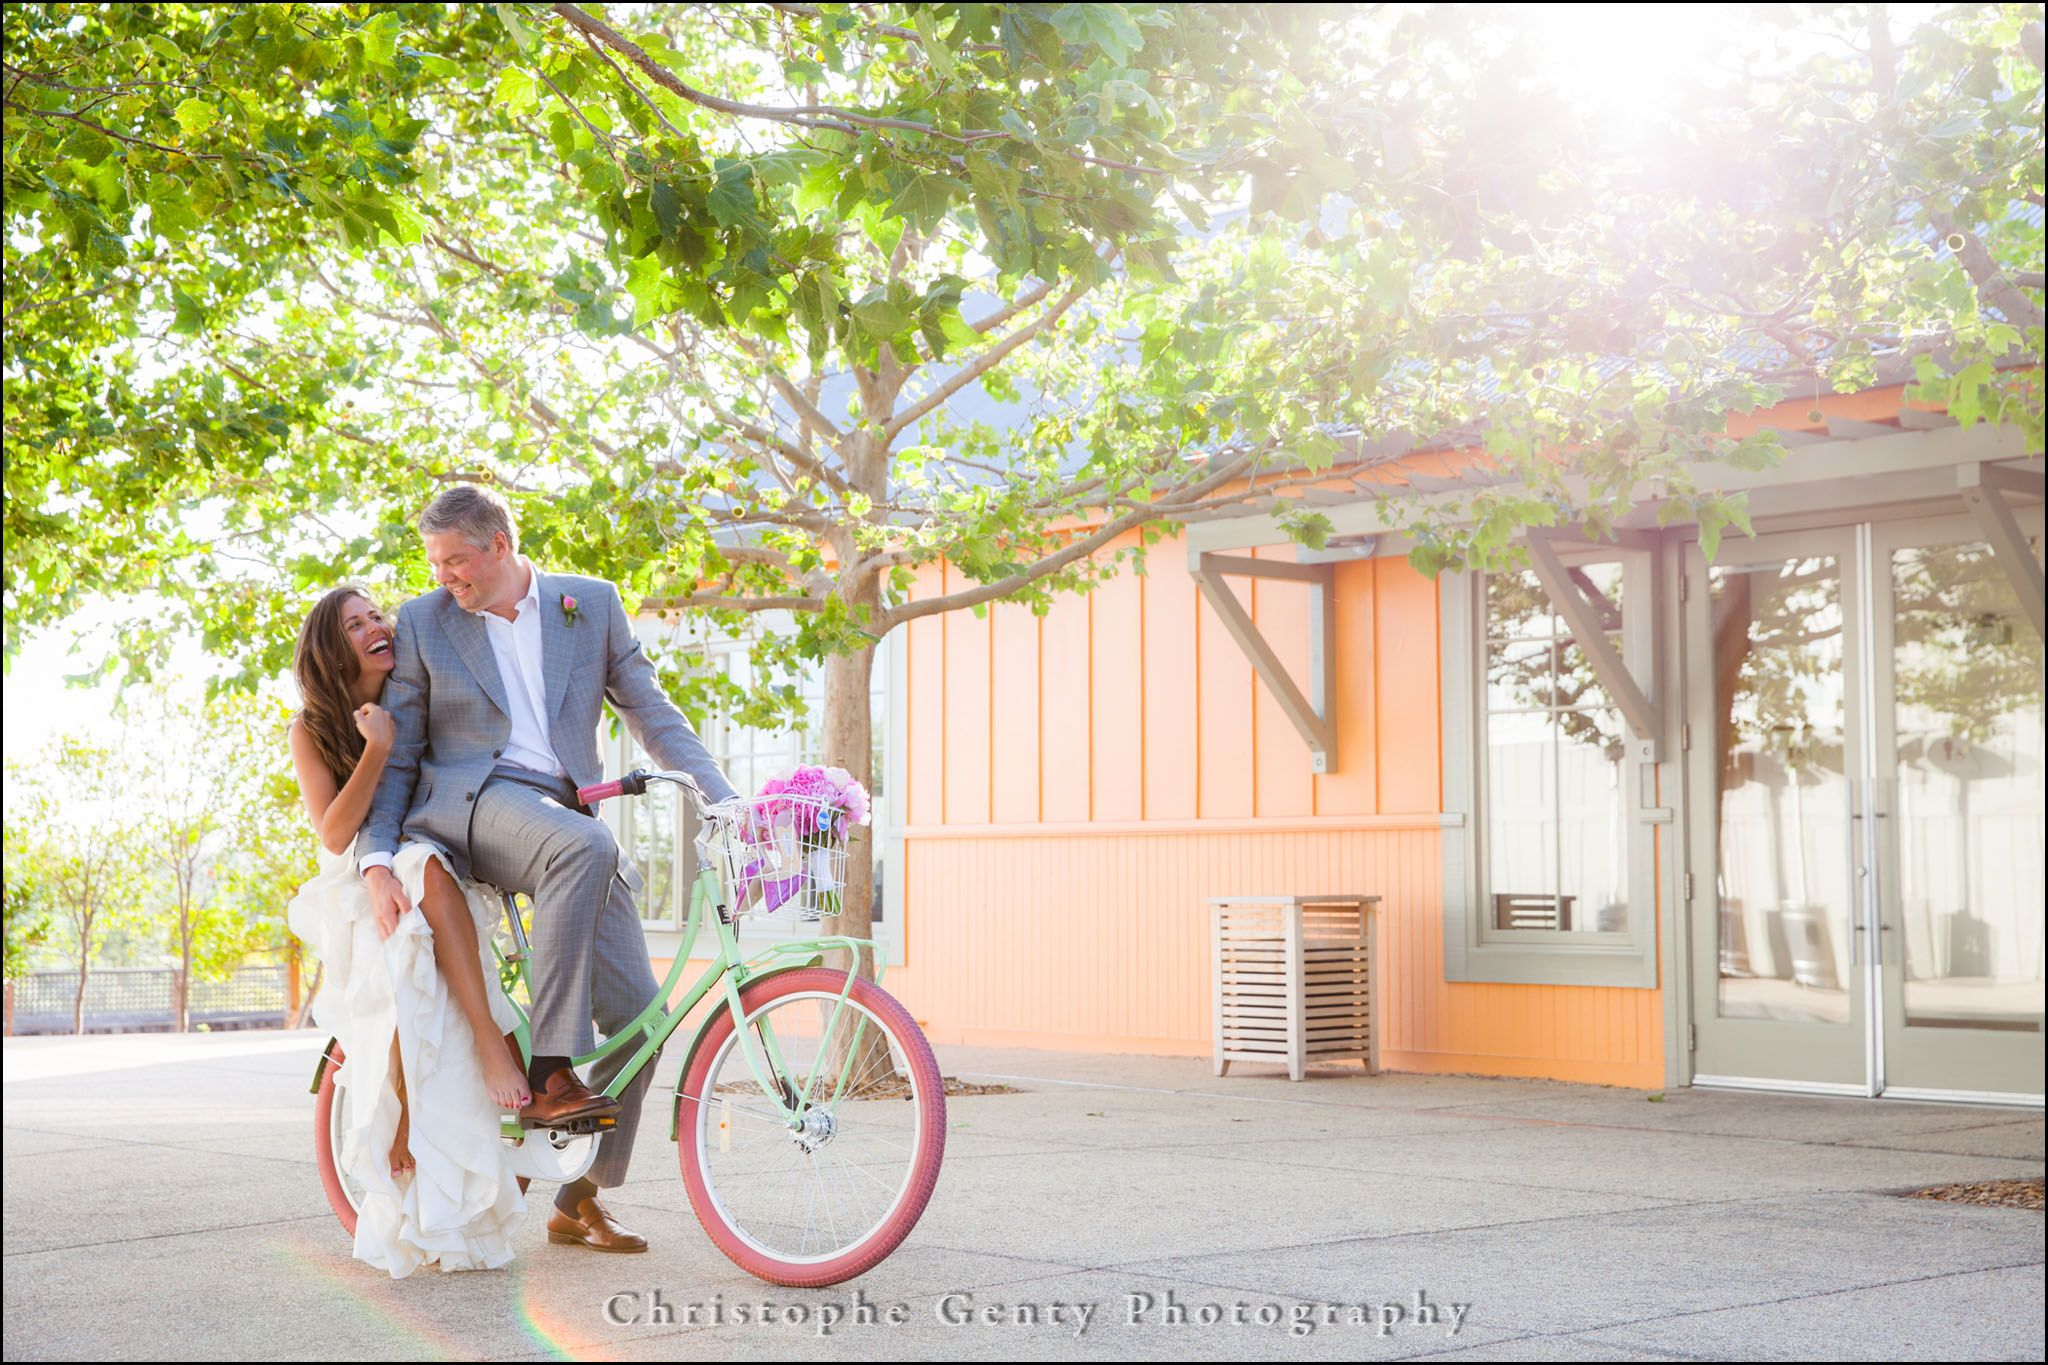 Wedding Photography at The Carneros Inn in the Napa Valley, CA | Christophe Genty Photography #bicycle #wedding #photography @thecarnerosinn